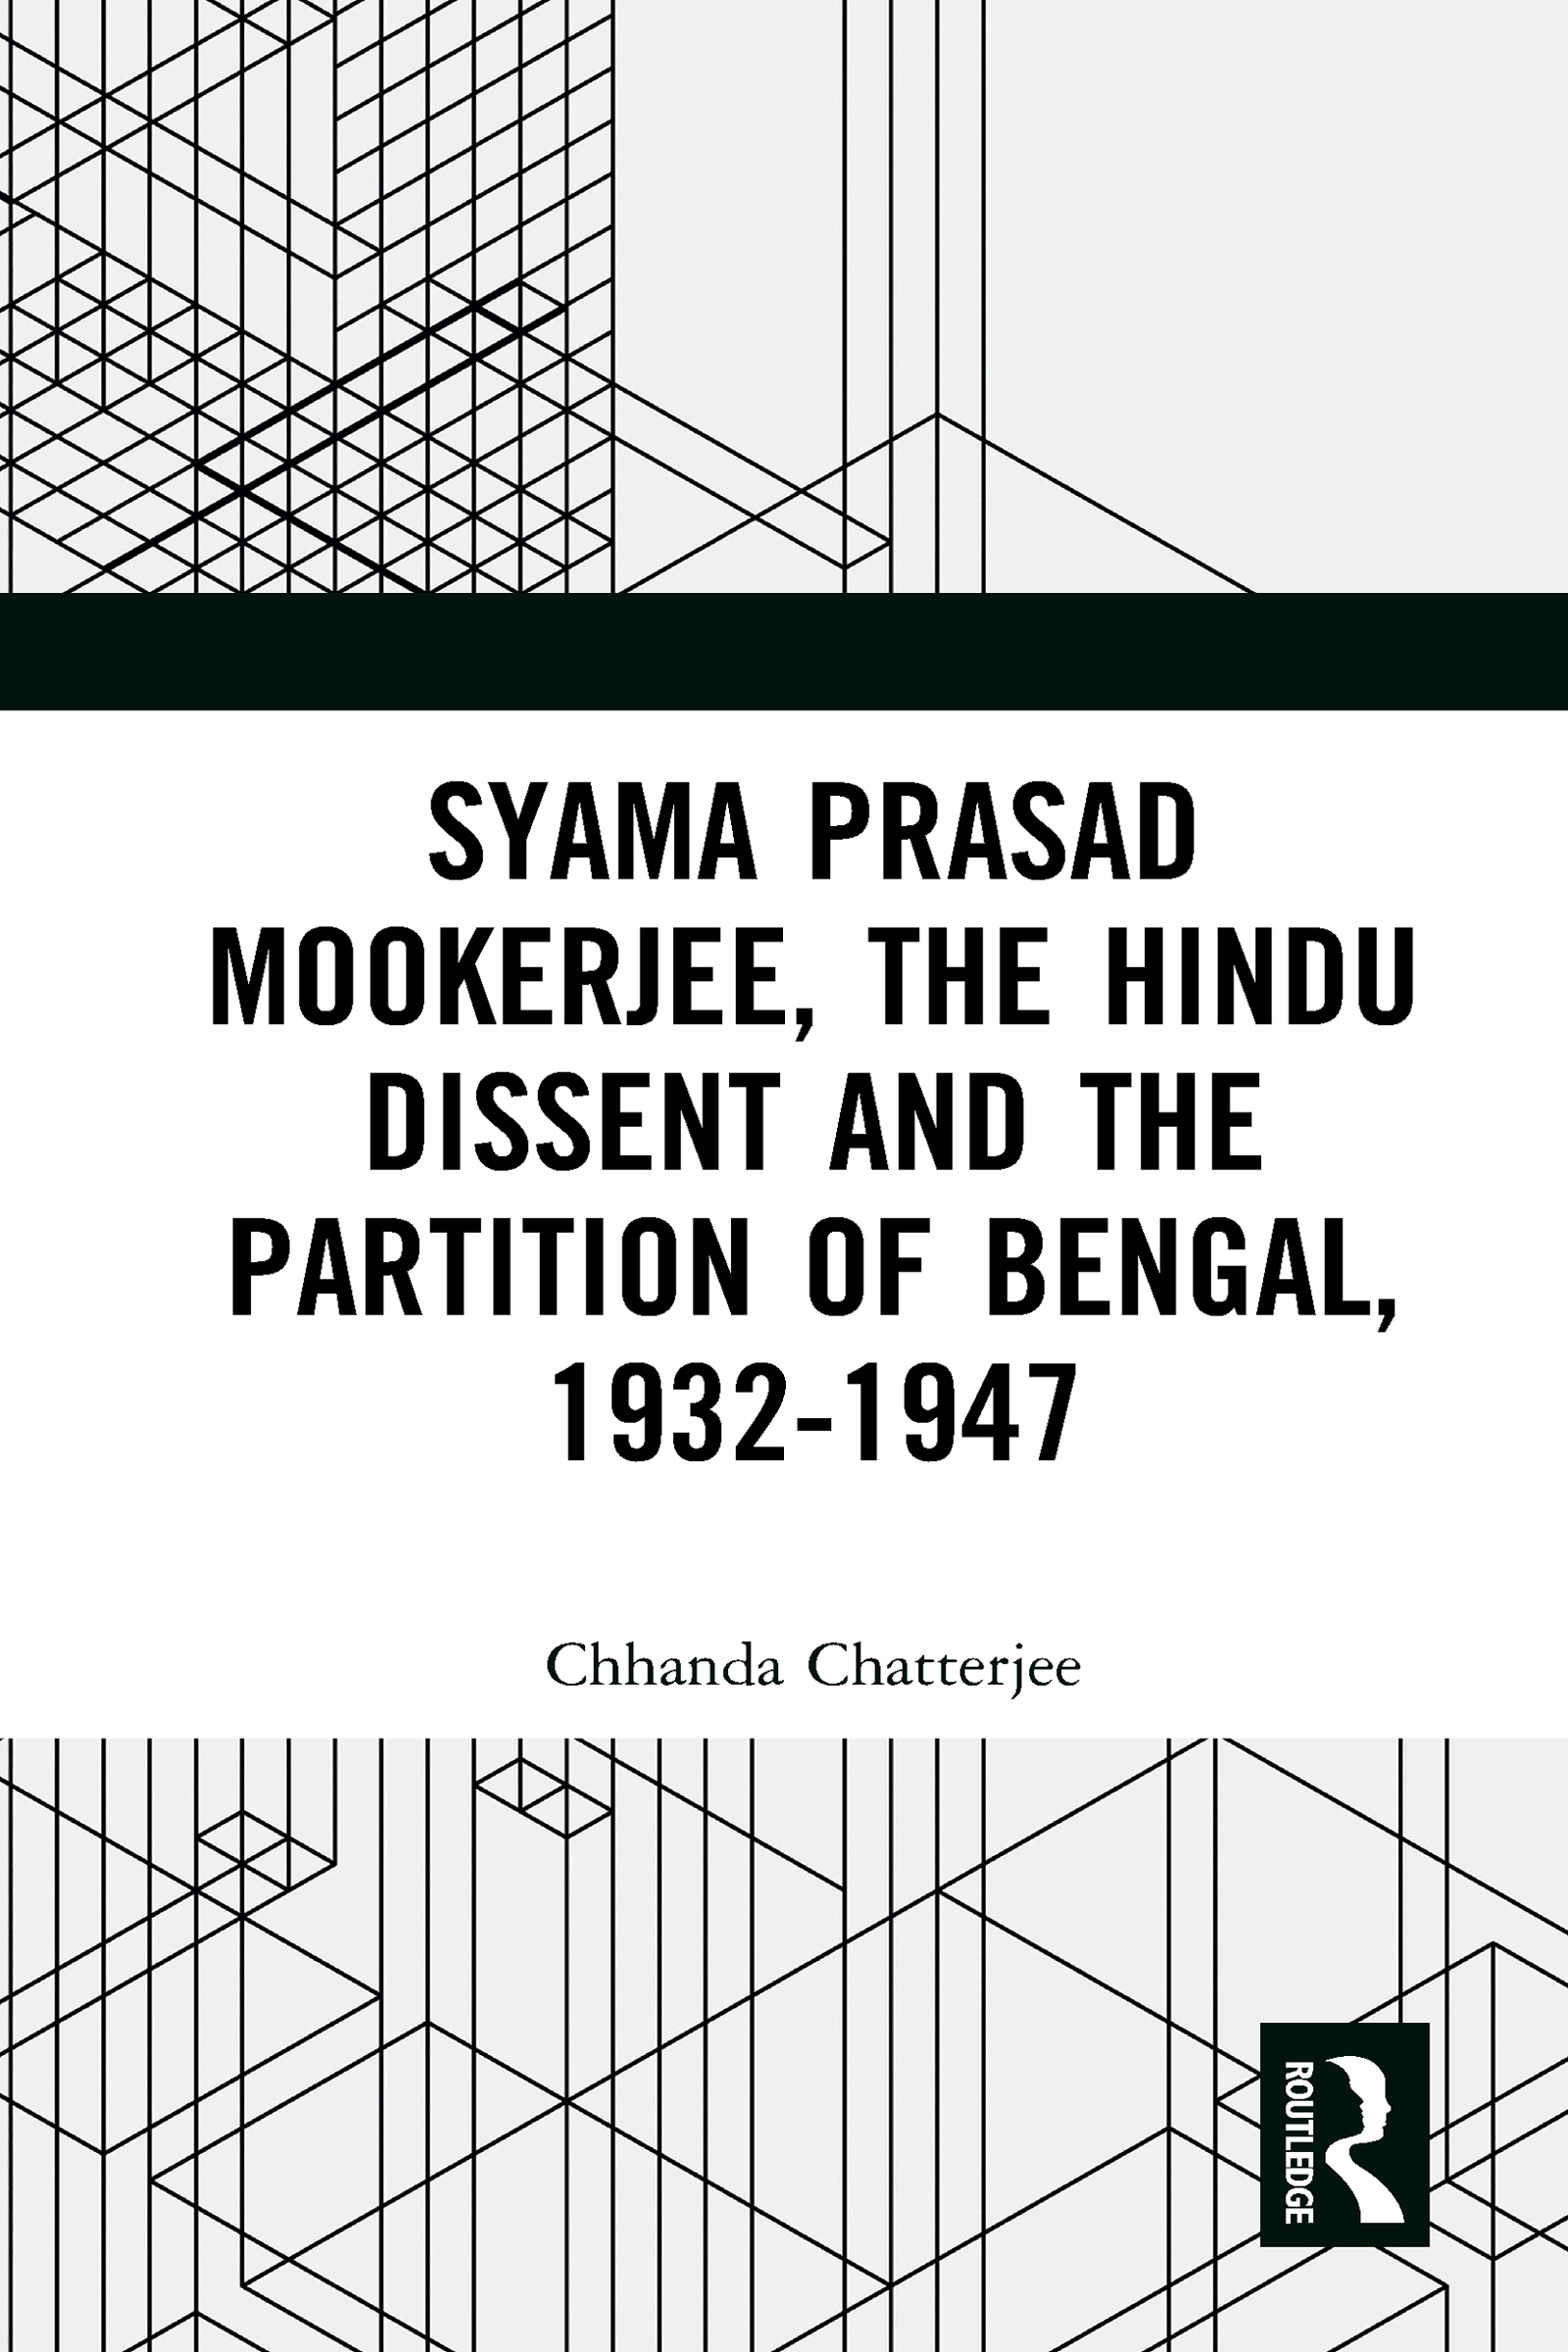 Syama Prasad Mookerjee, the Hindu Dissent and the Partition of Bengal, 1932-1947